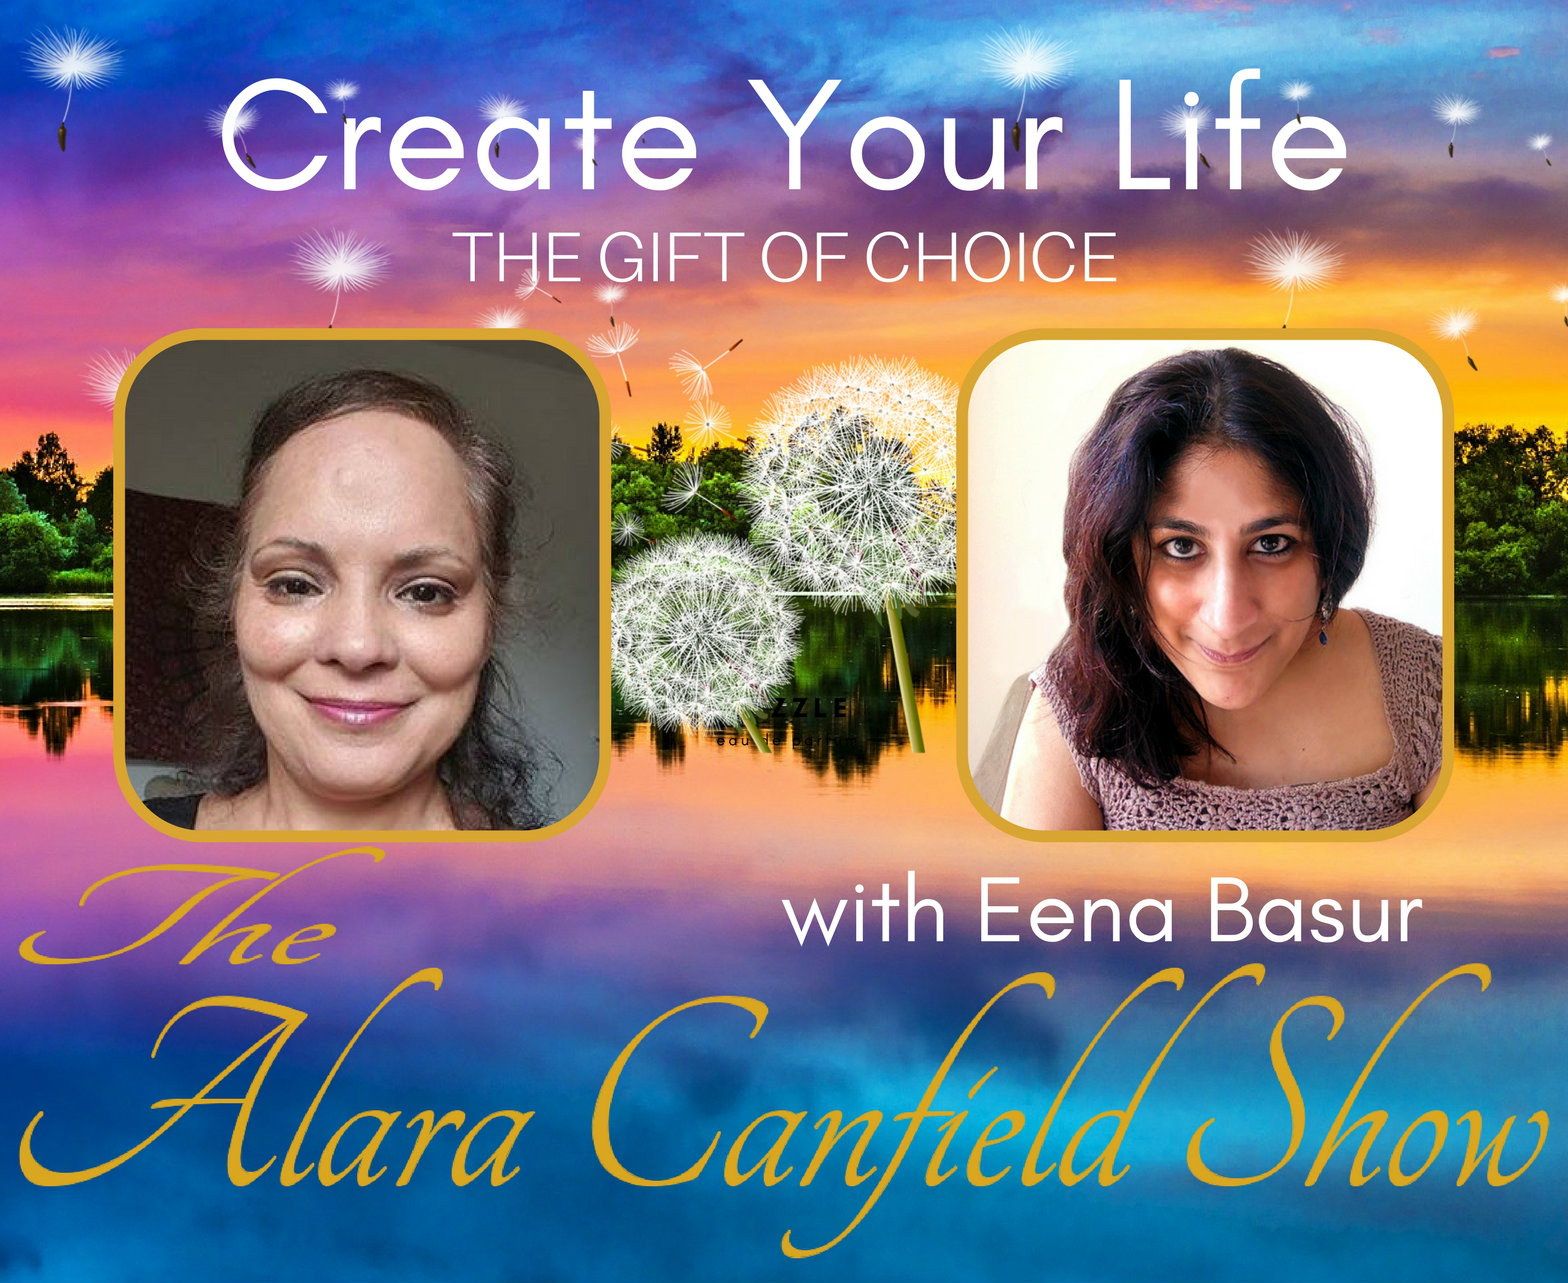 Create Your Life with Eena Basur Feb 1 Podcast